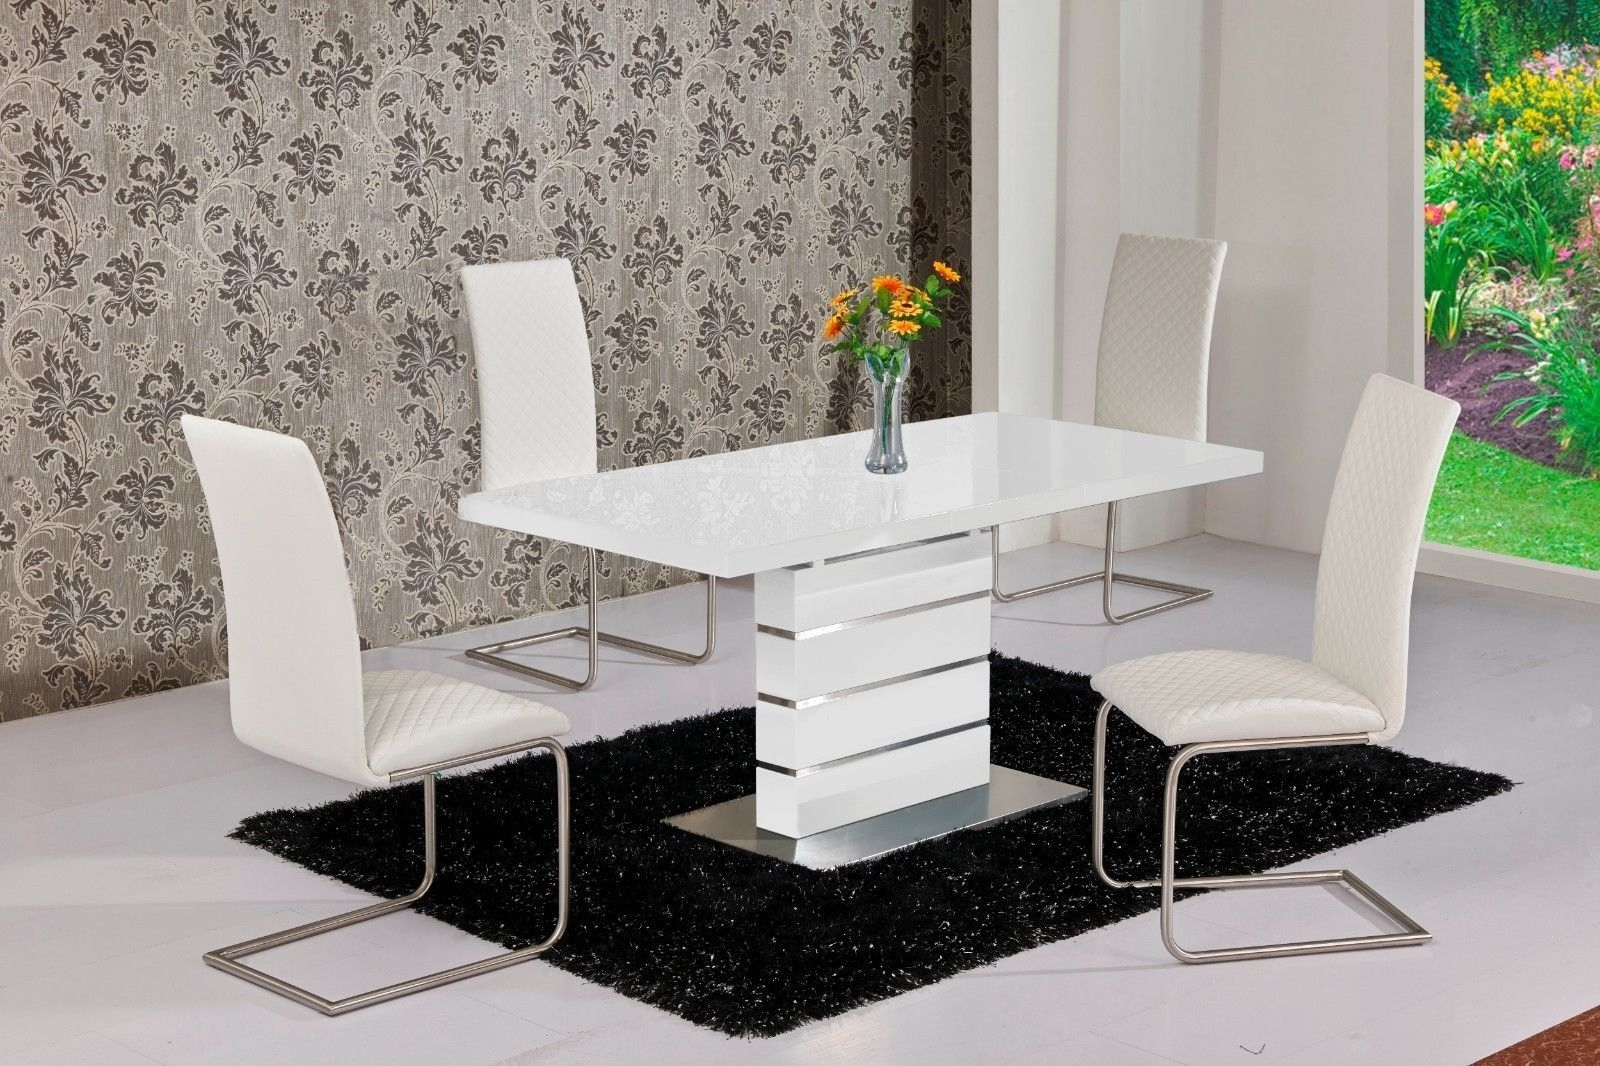 Mace High Gloss Extending 120 160 Dining Table & Chair Set – White Throughout Most Recently Released White Gloss Dining Chairs (View 4 of 25)